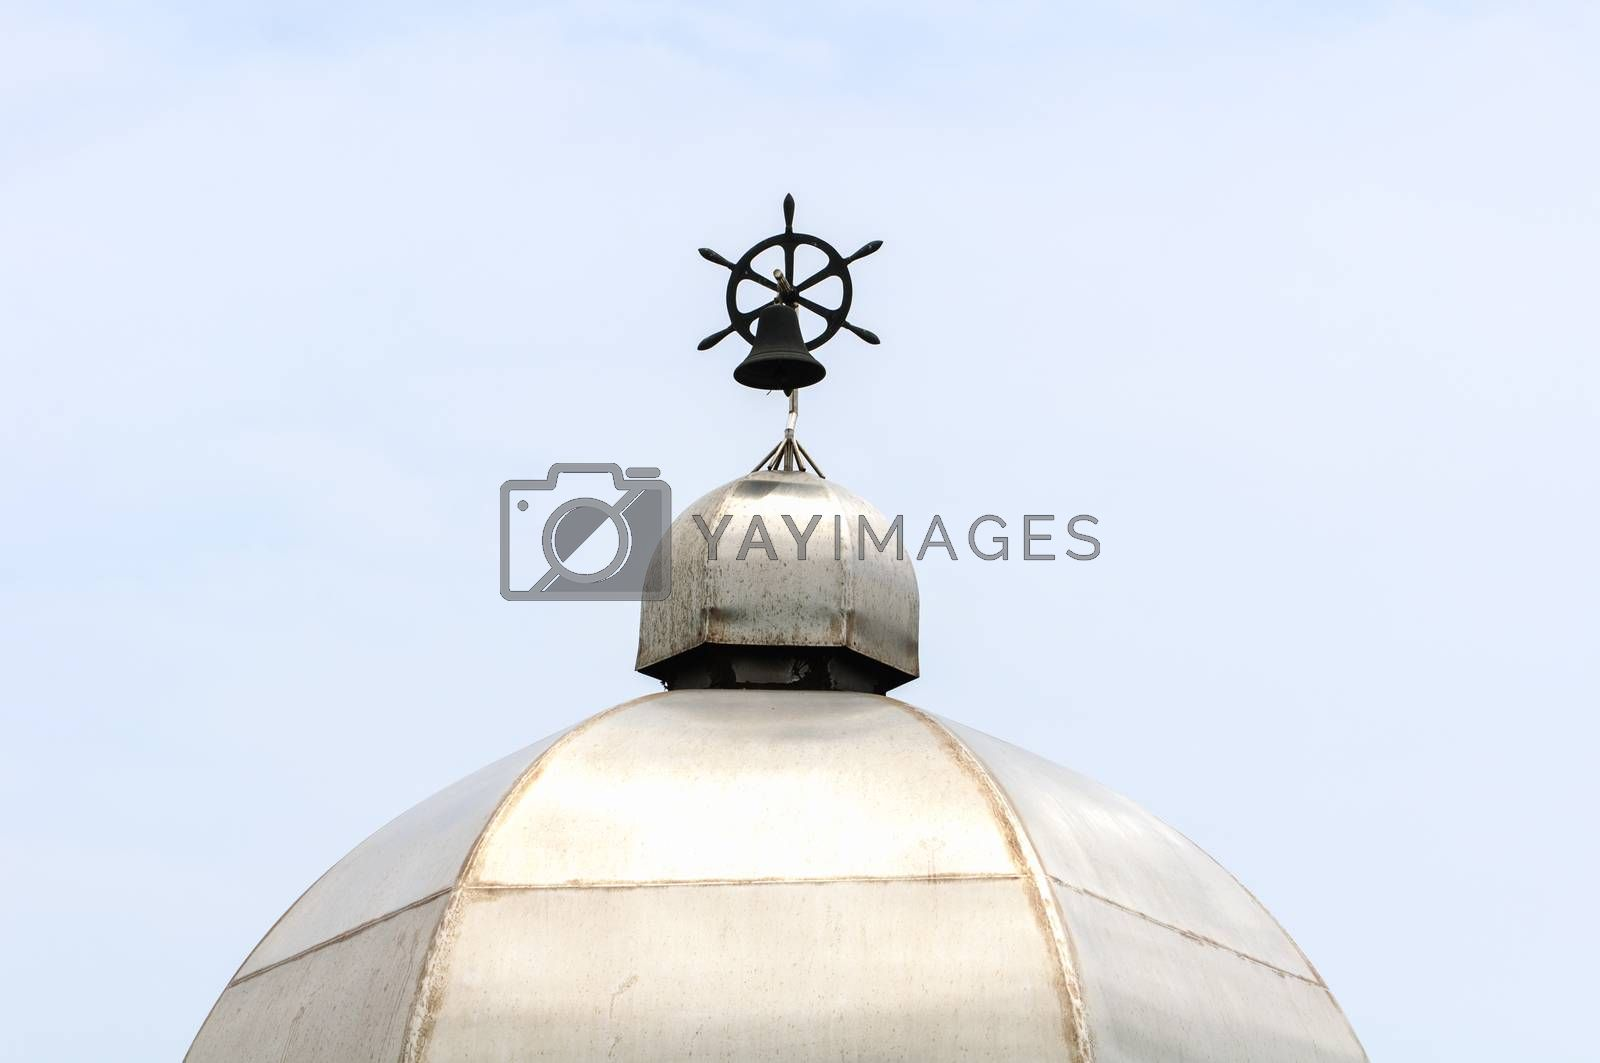 Royalty free image of The bell in the roof by Sorapop